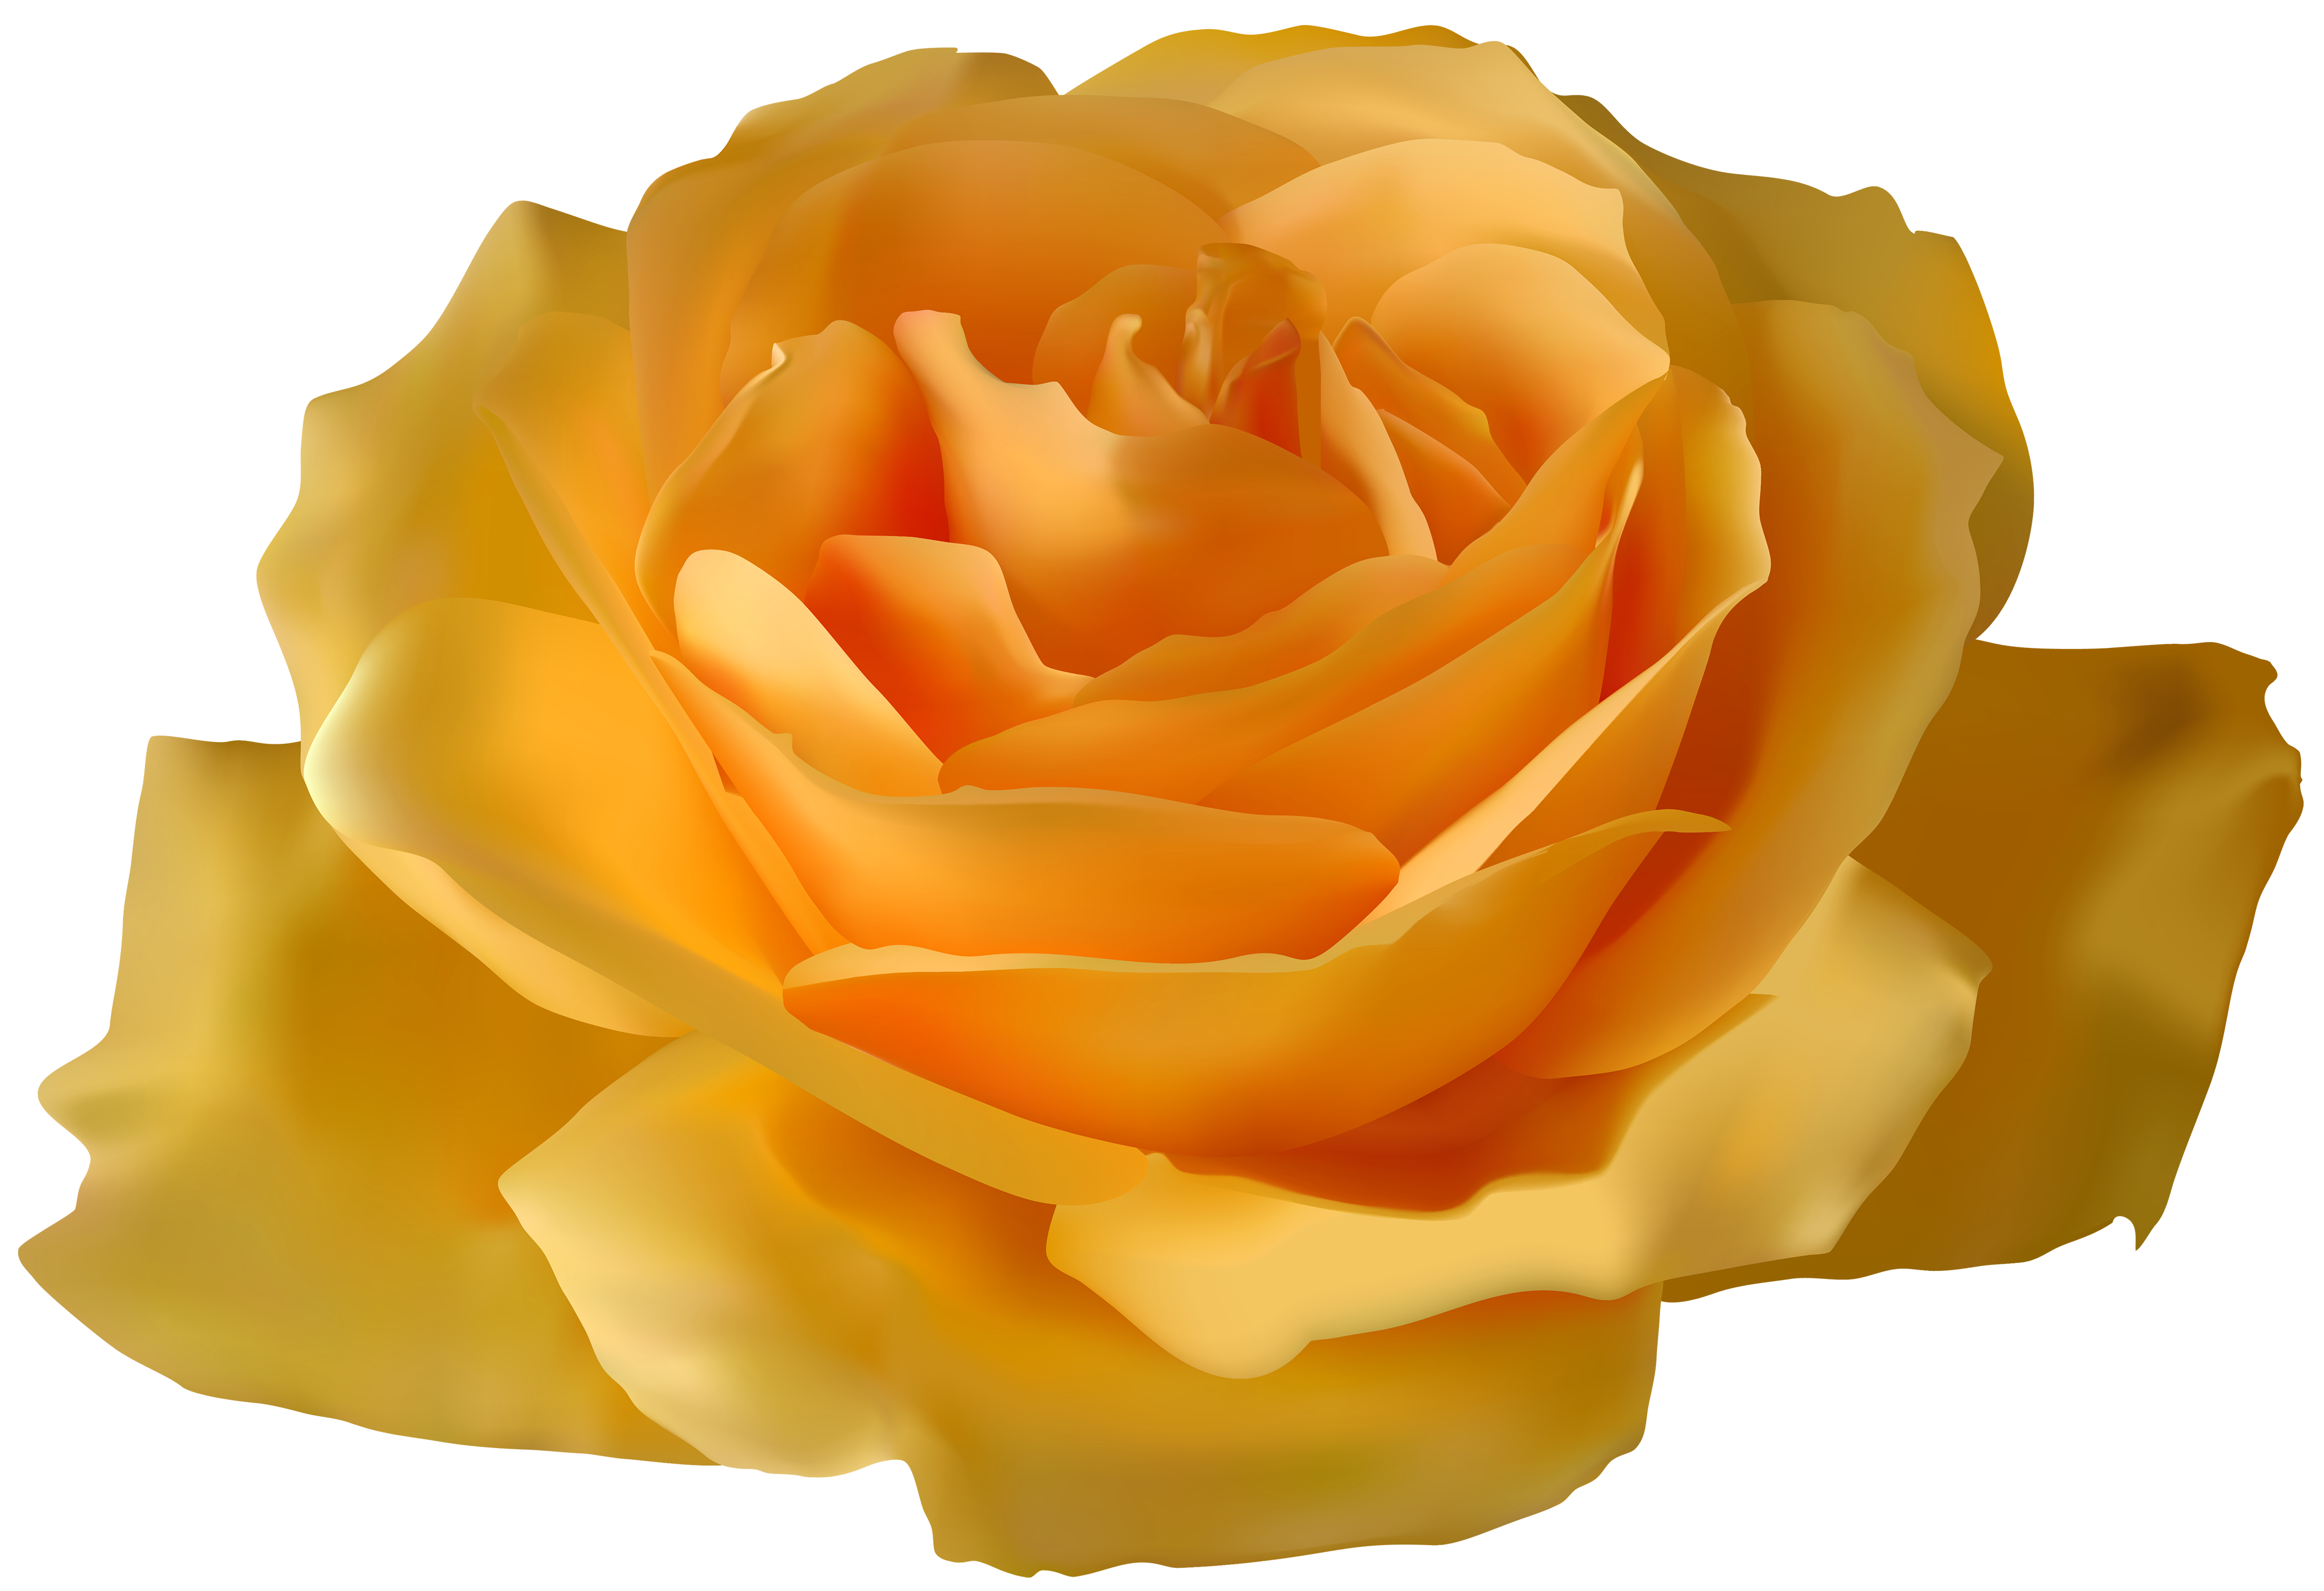 Yellow flower png. Rose clipart best web